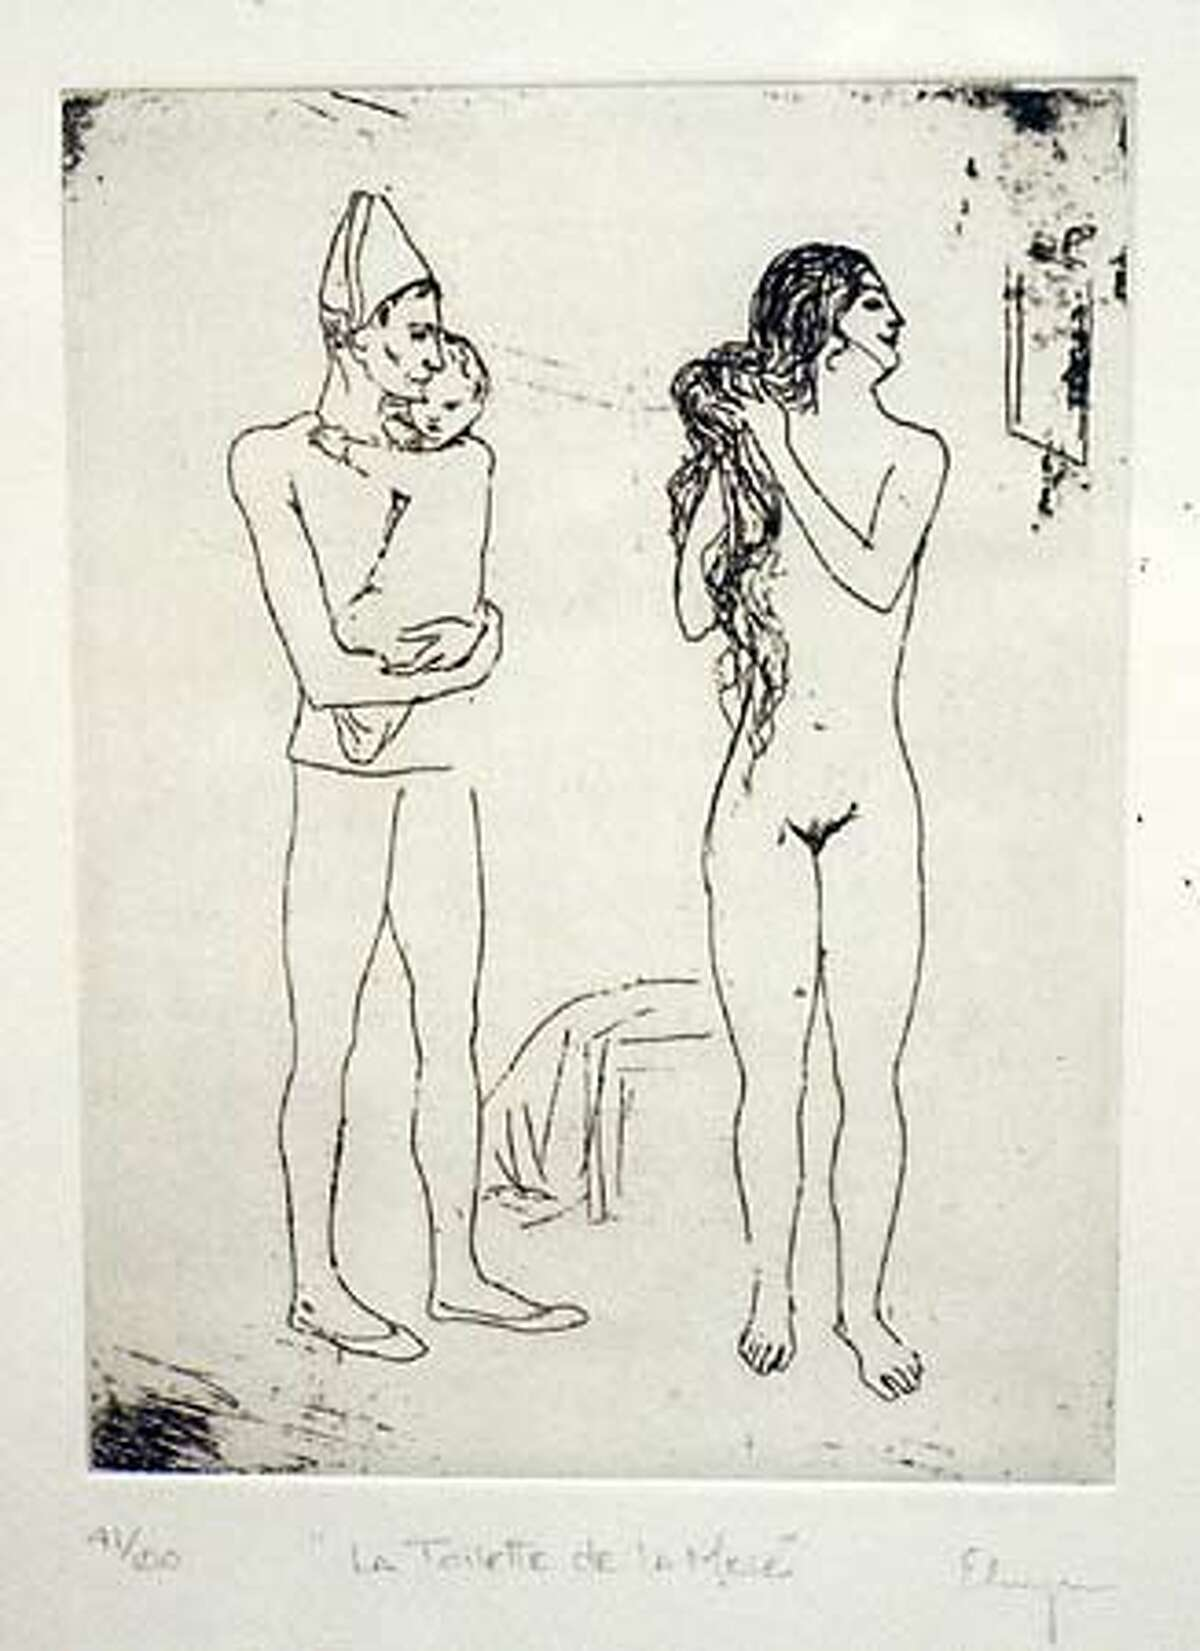 Elmyr de Hory's etching based on Pablo Picasso's 1905